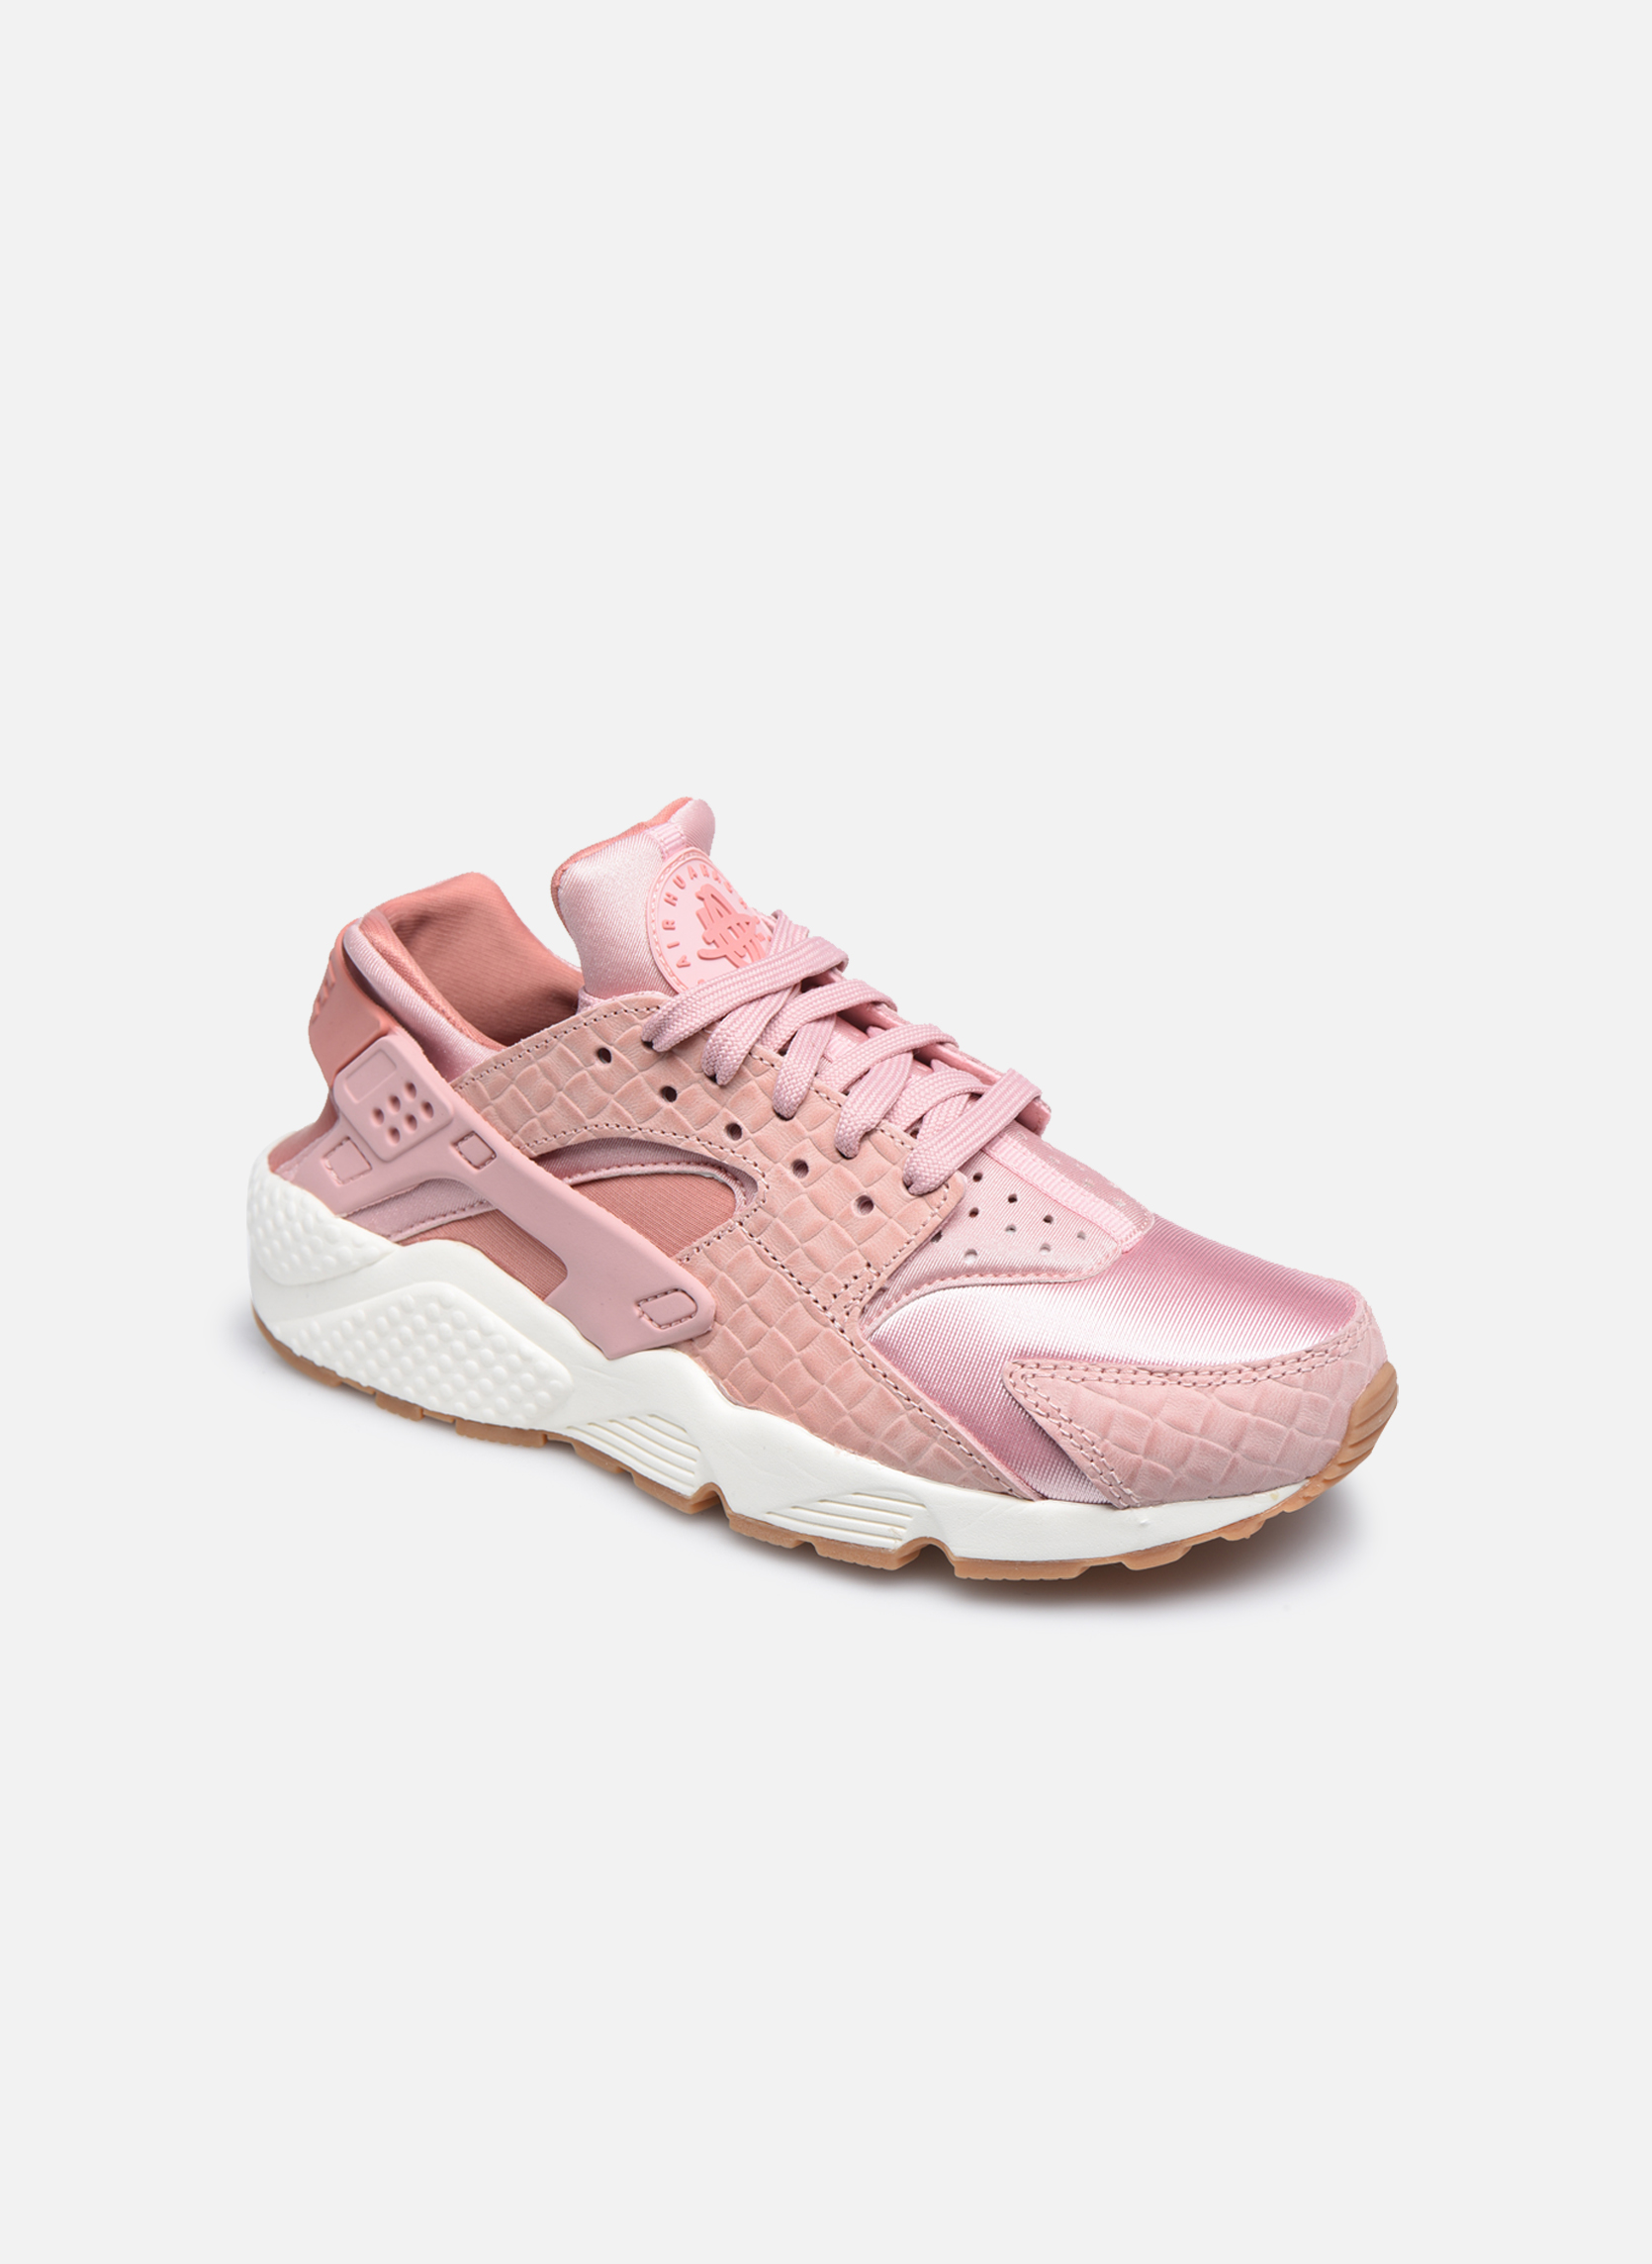 Wmns Air Huarache Run Prm